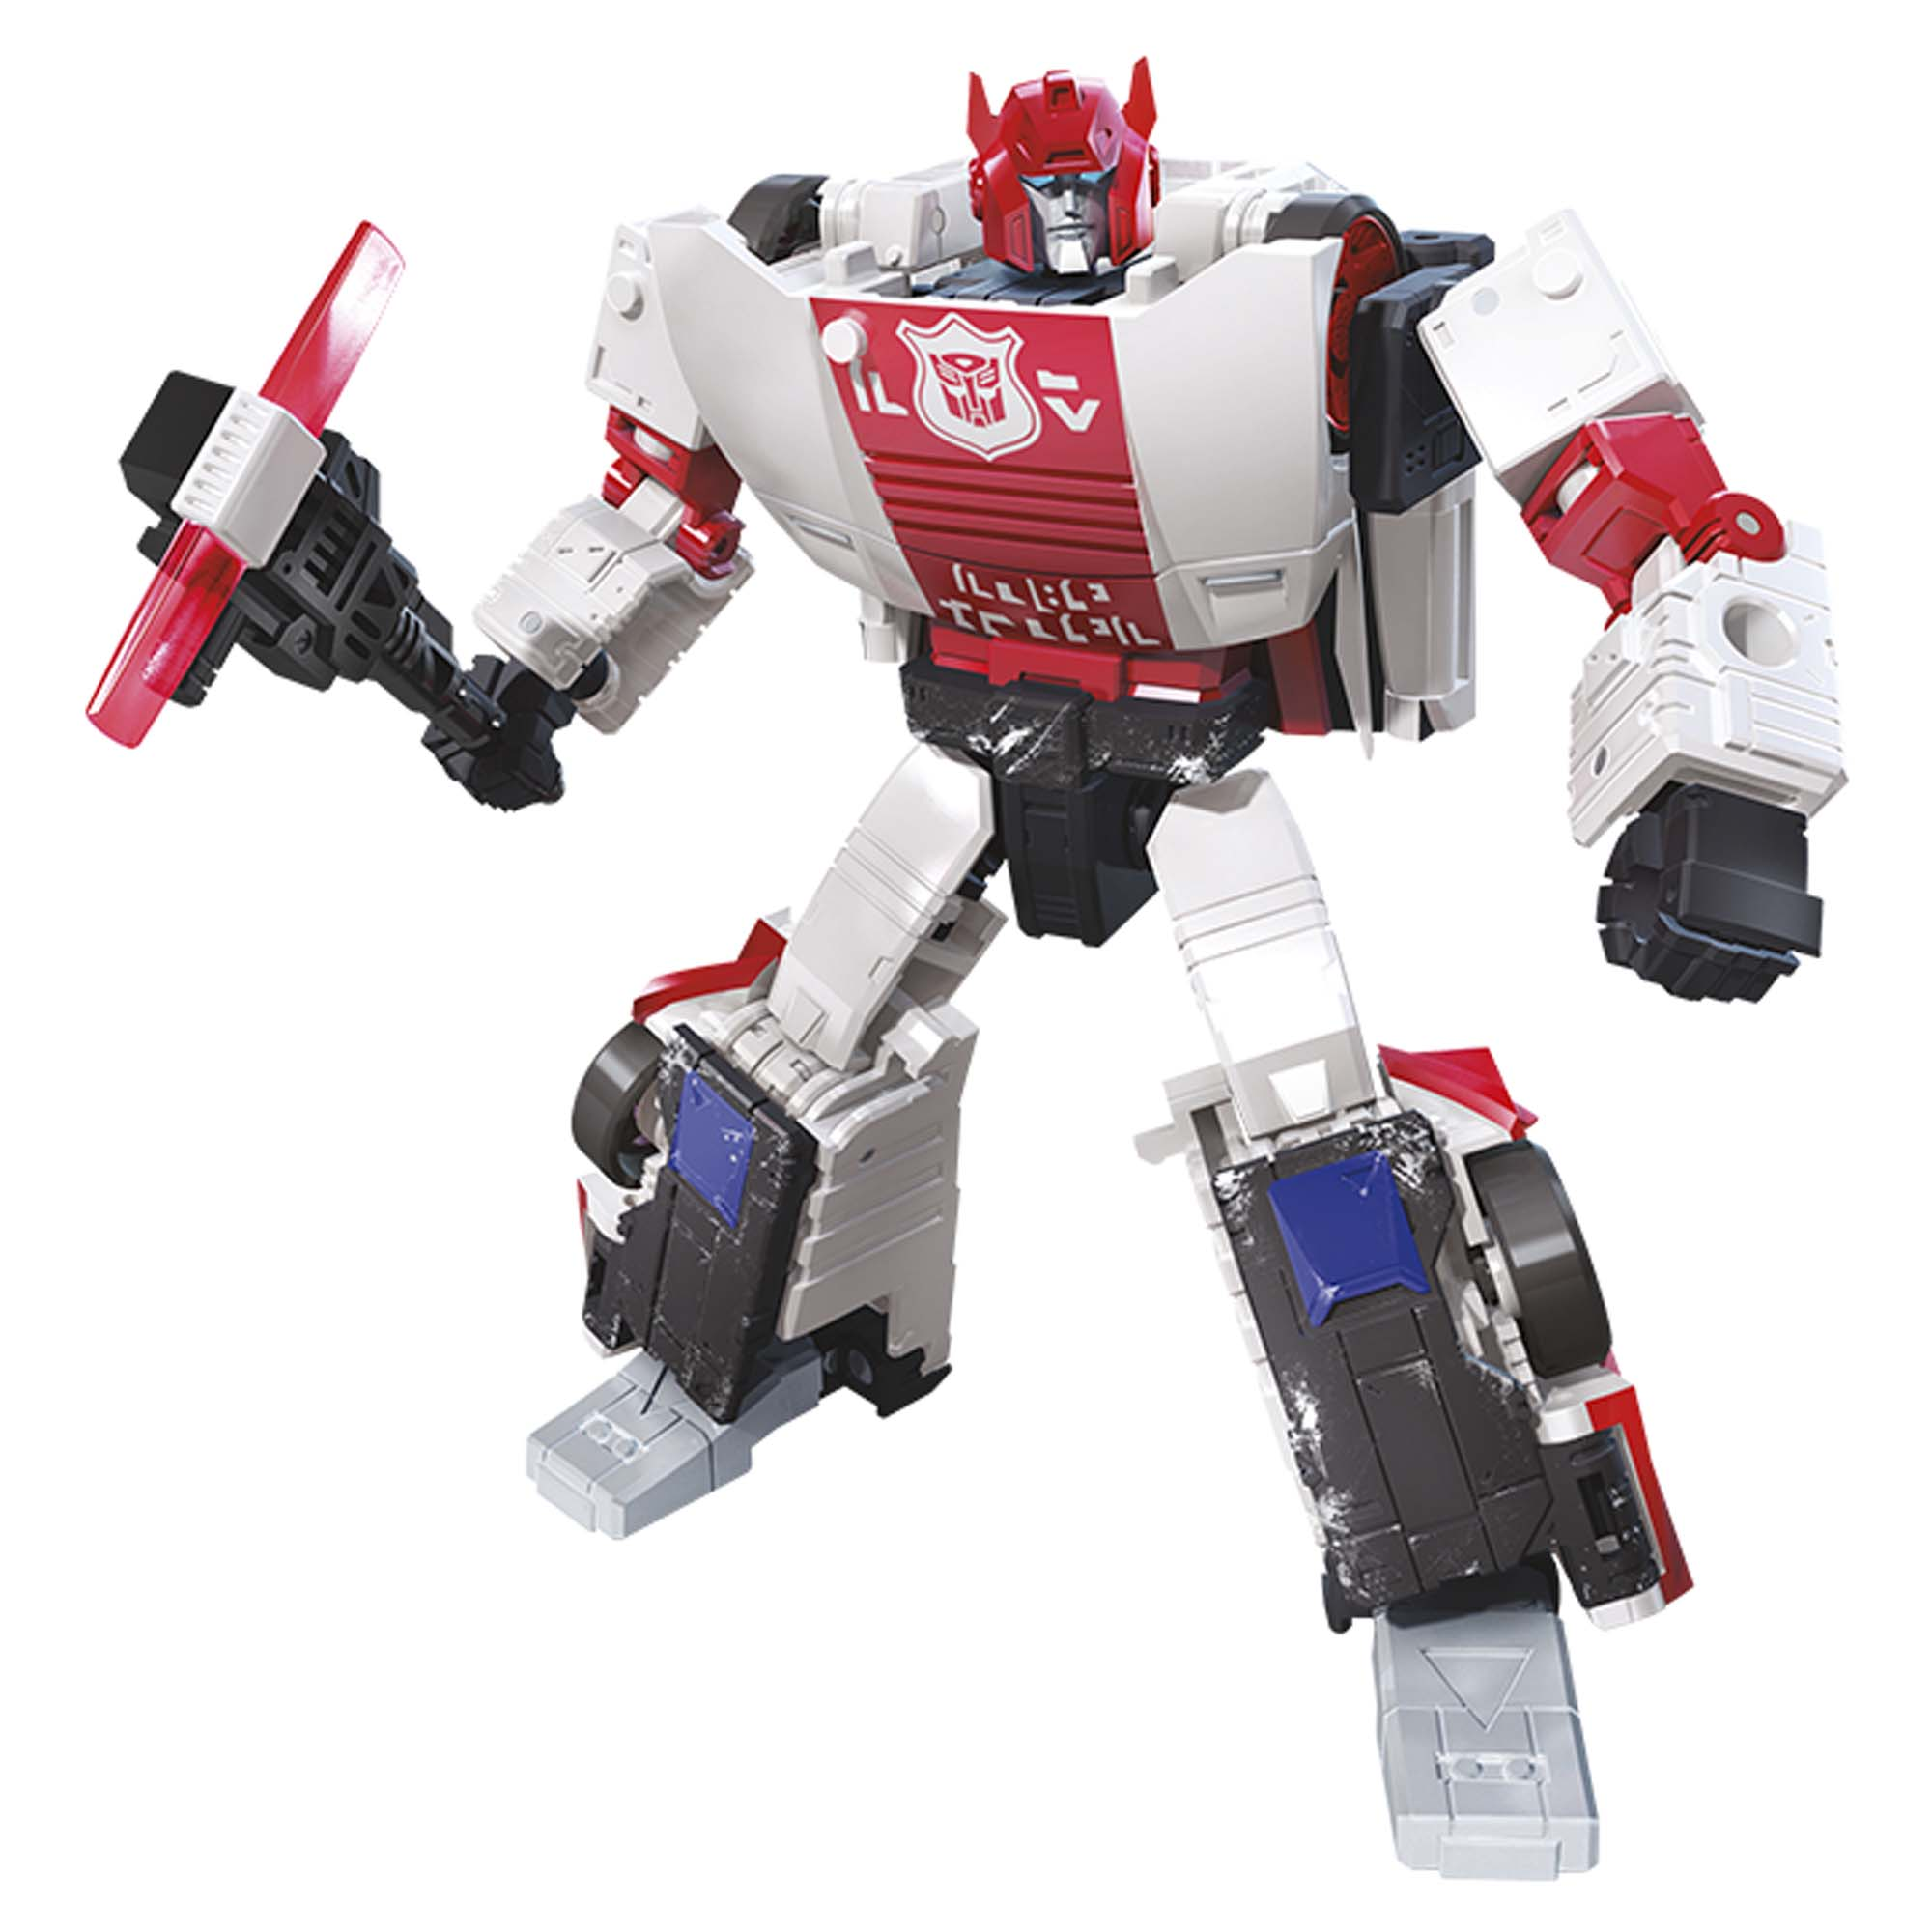 Transformers Generations War for Cybertron Deluxe WFC-S35 Red Alert